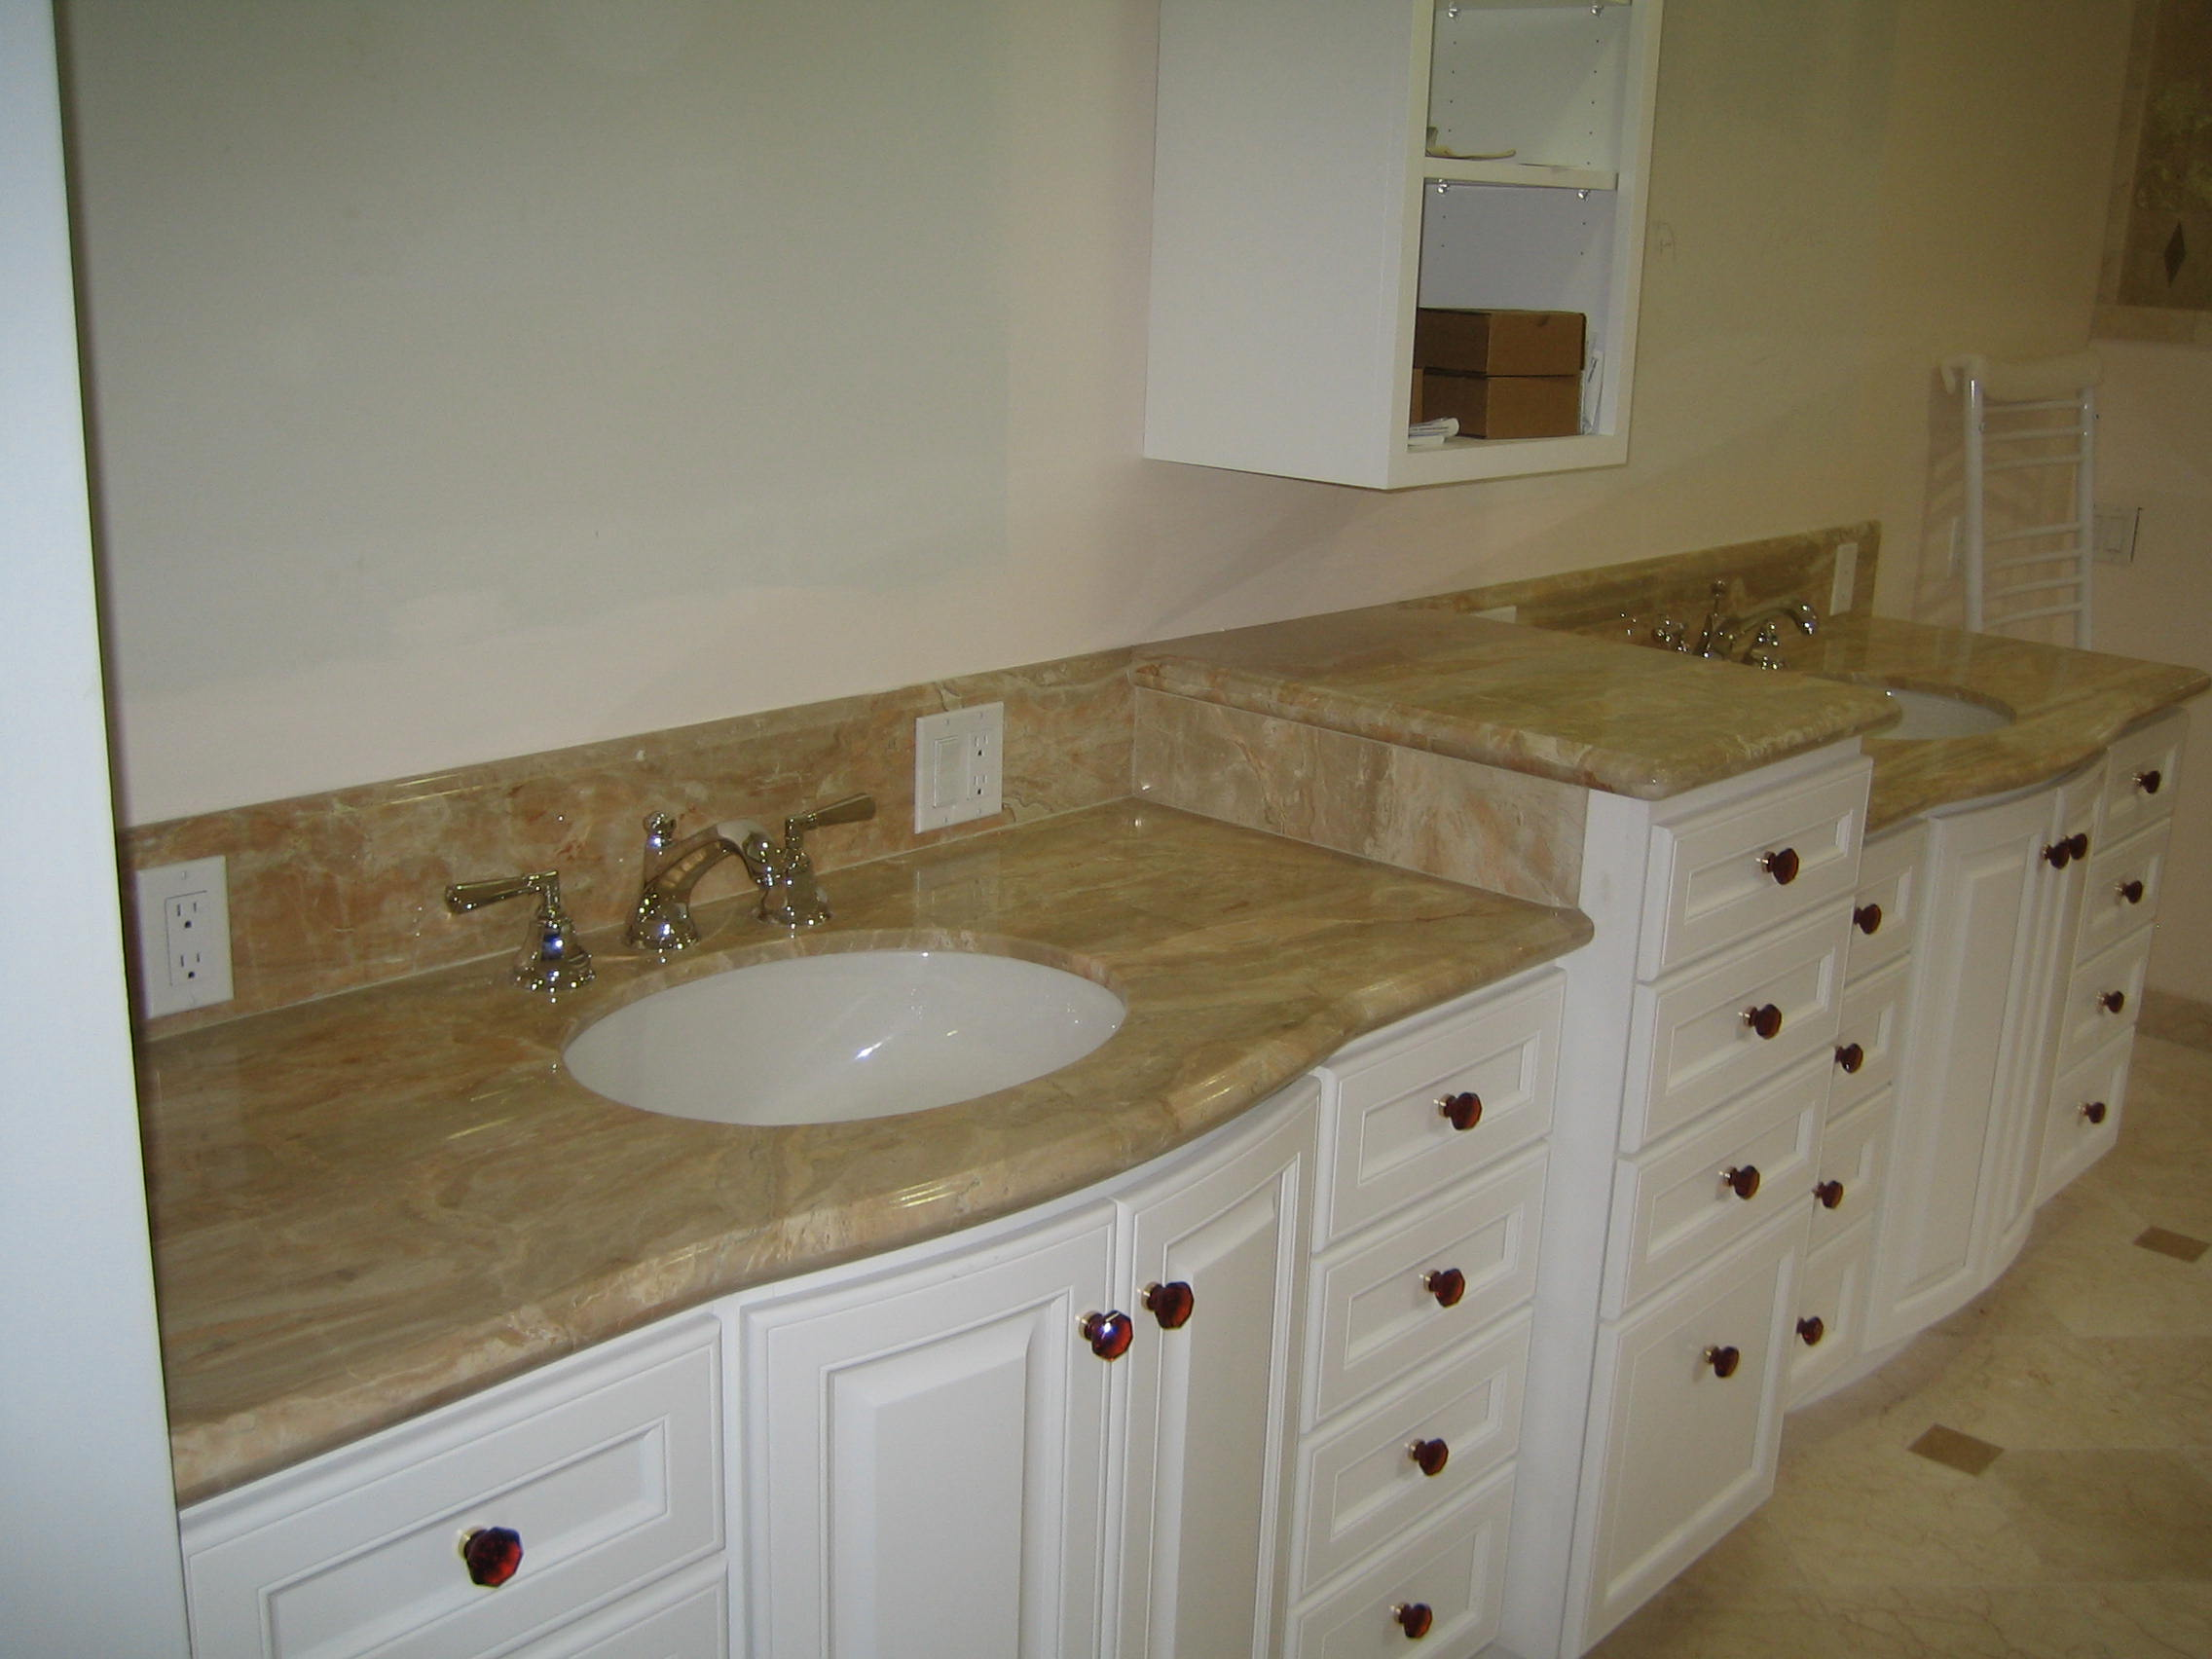 Bathroom Countertops Bathroom Counters Dark Bathroom Counters Corian Bathroom